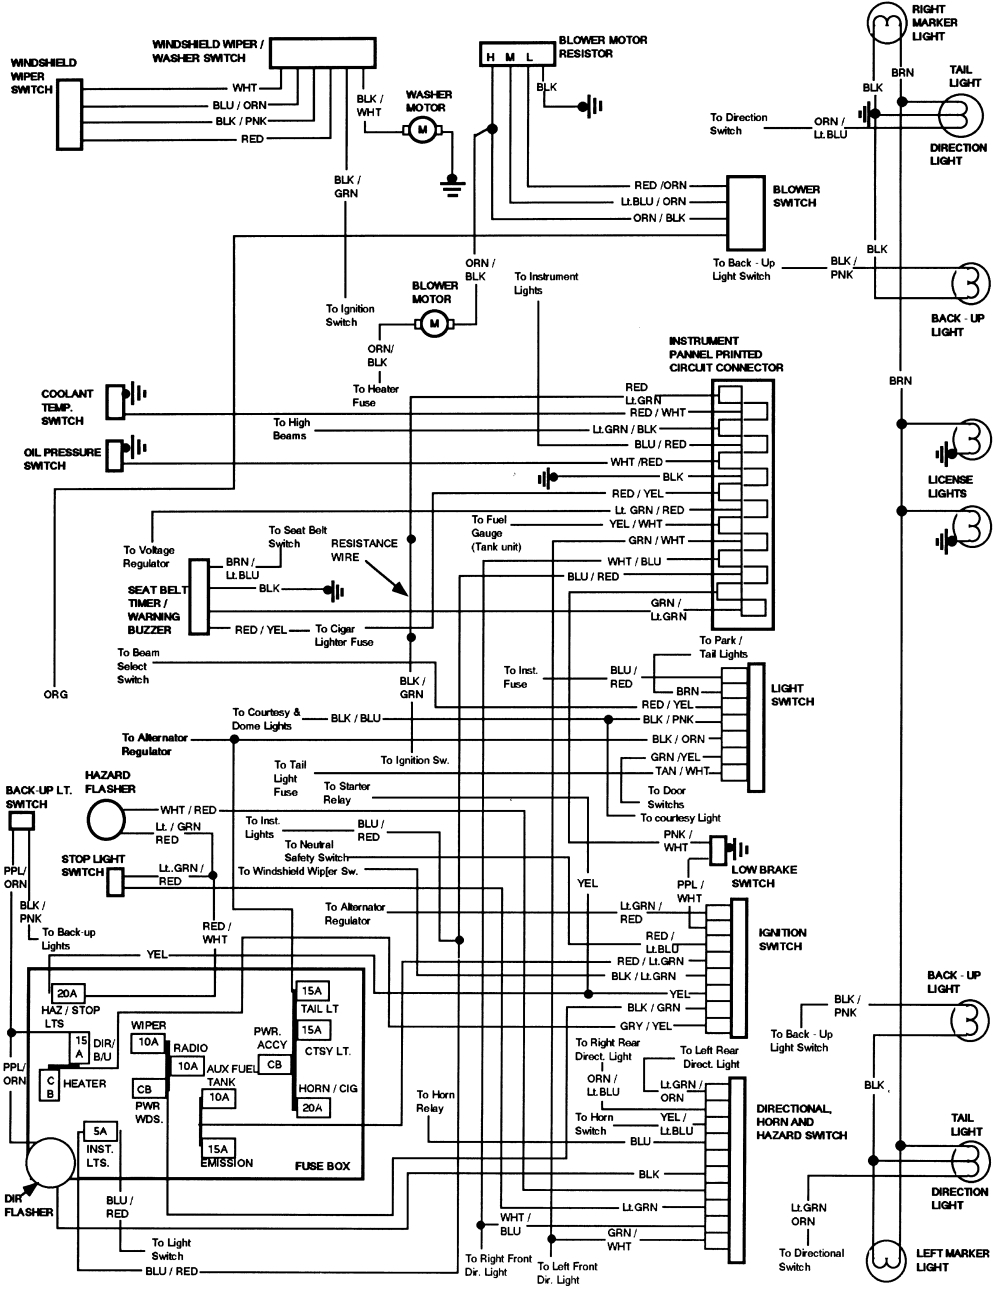 1989 ford f150 ignition wiring diagram ford f350 wiring diagram charging system wiring diagram for ford 1990 ford e250 wiring diagram 1991 ford f350 wiring diagram 20f ford e 350 wiring diagram for blower motor basic wiring diagram \u2022